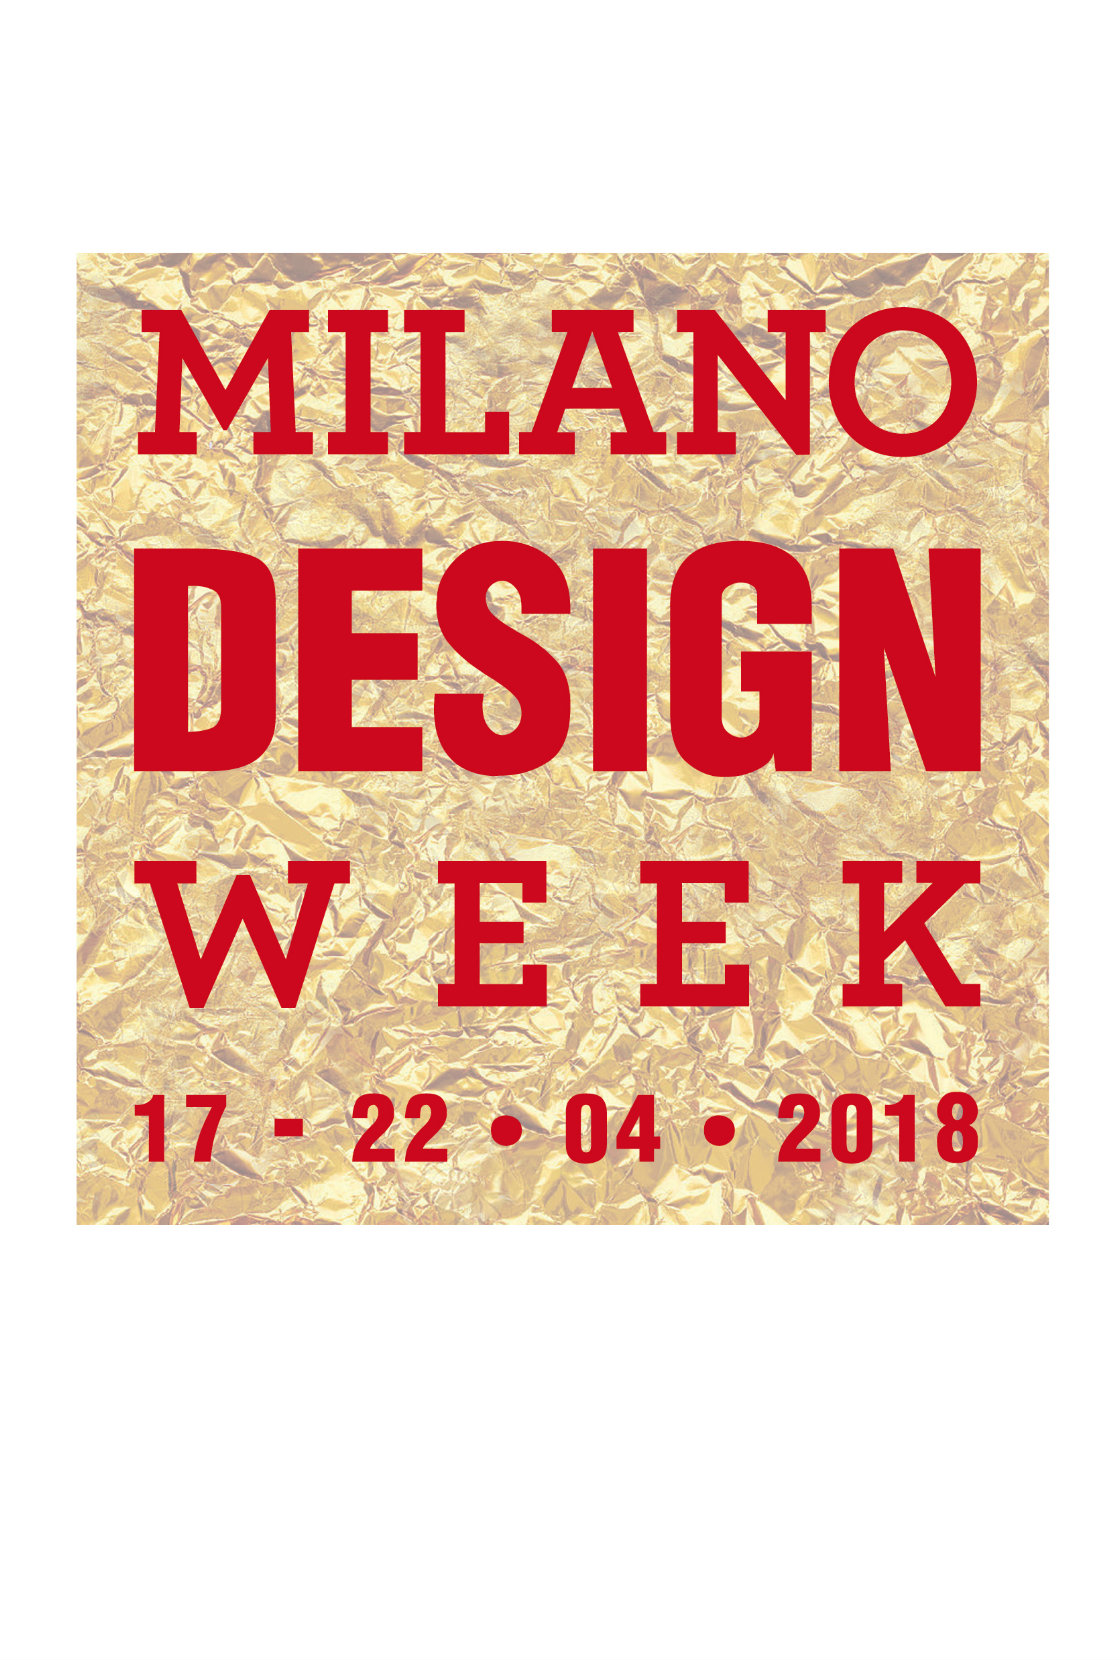 Let´s Know The Events On Milan Design Week 2018